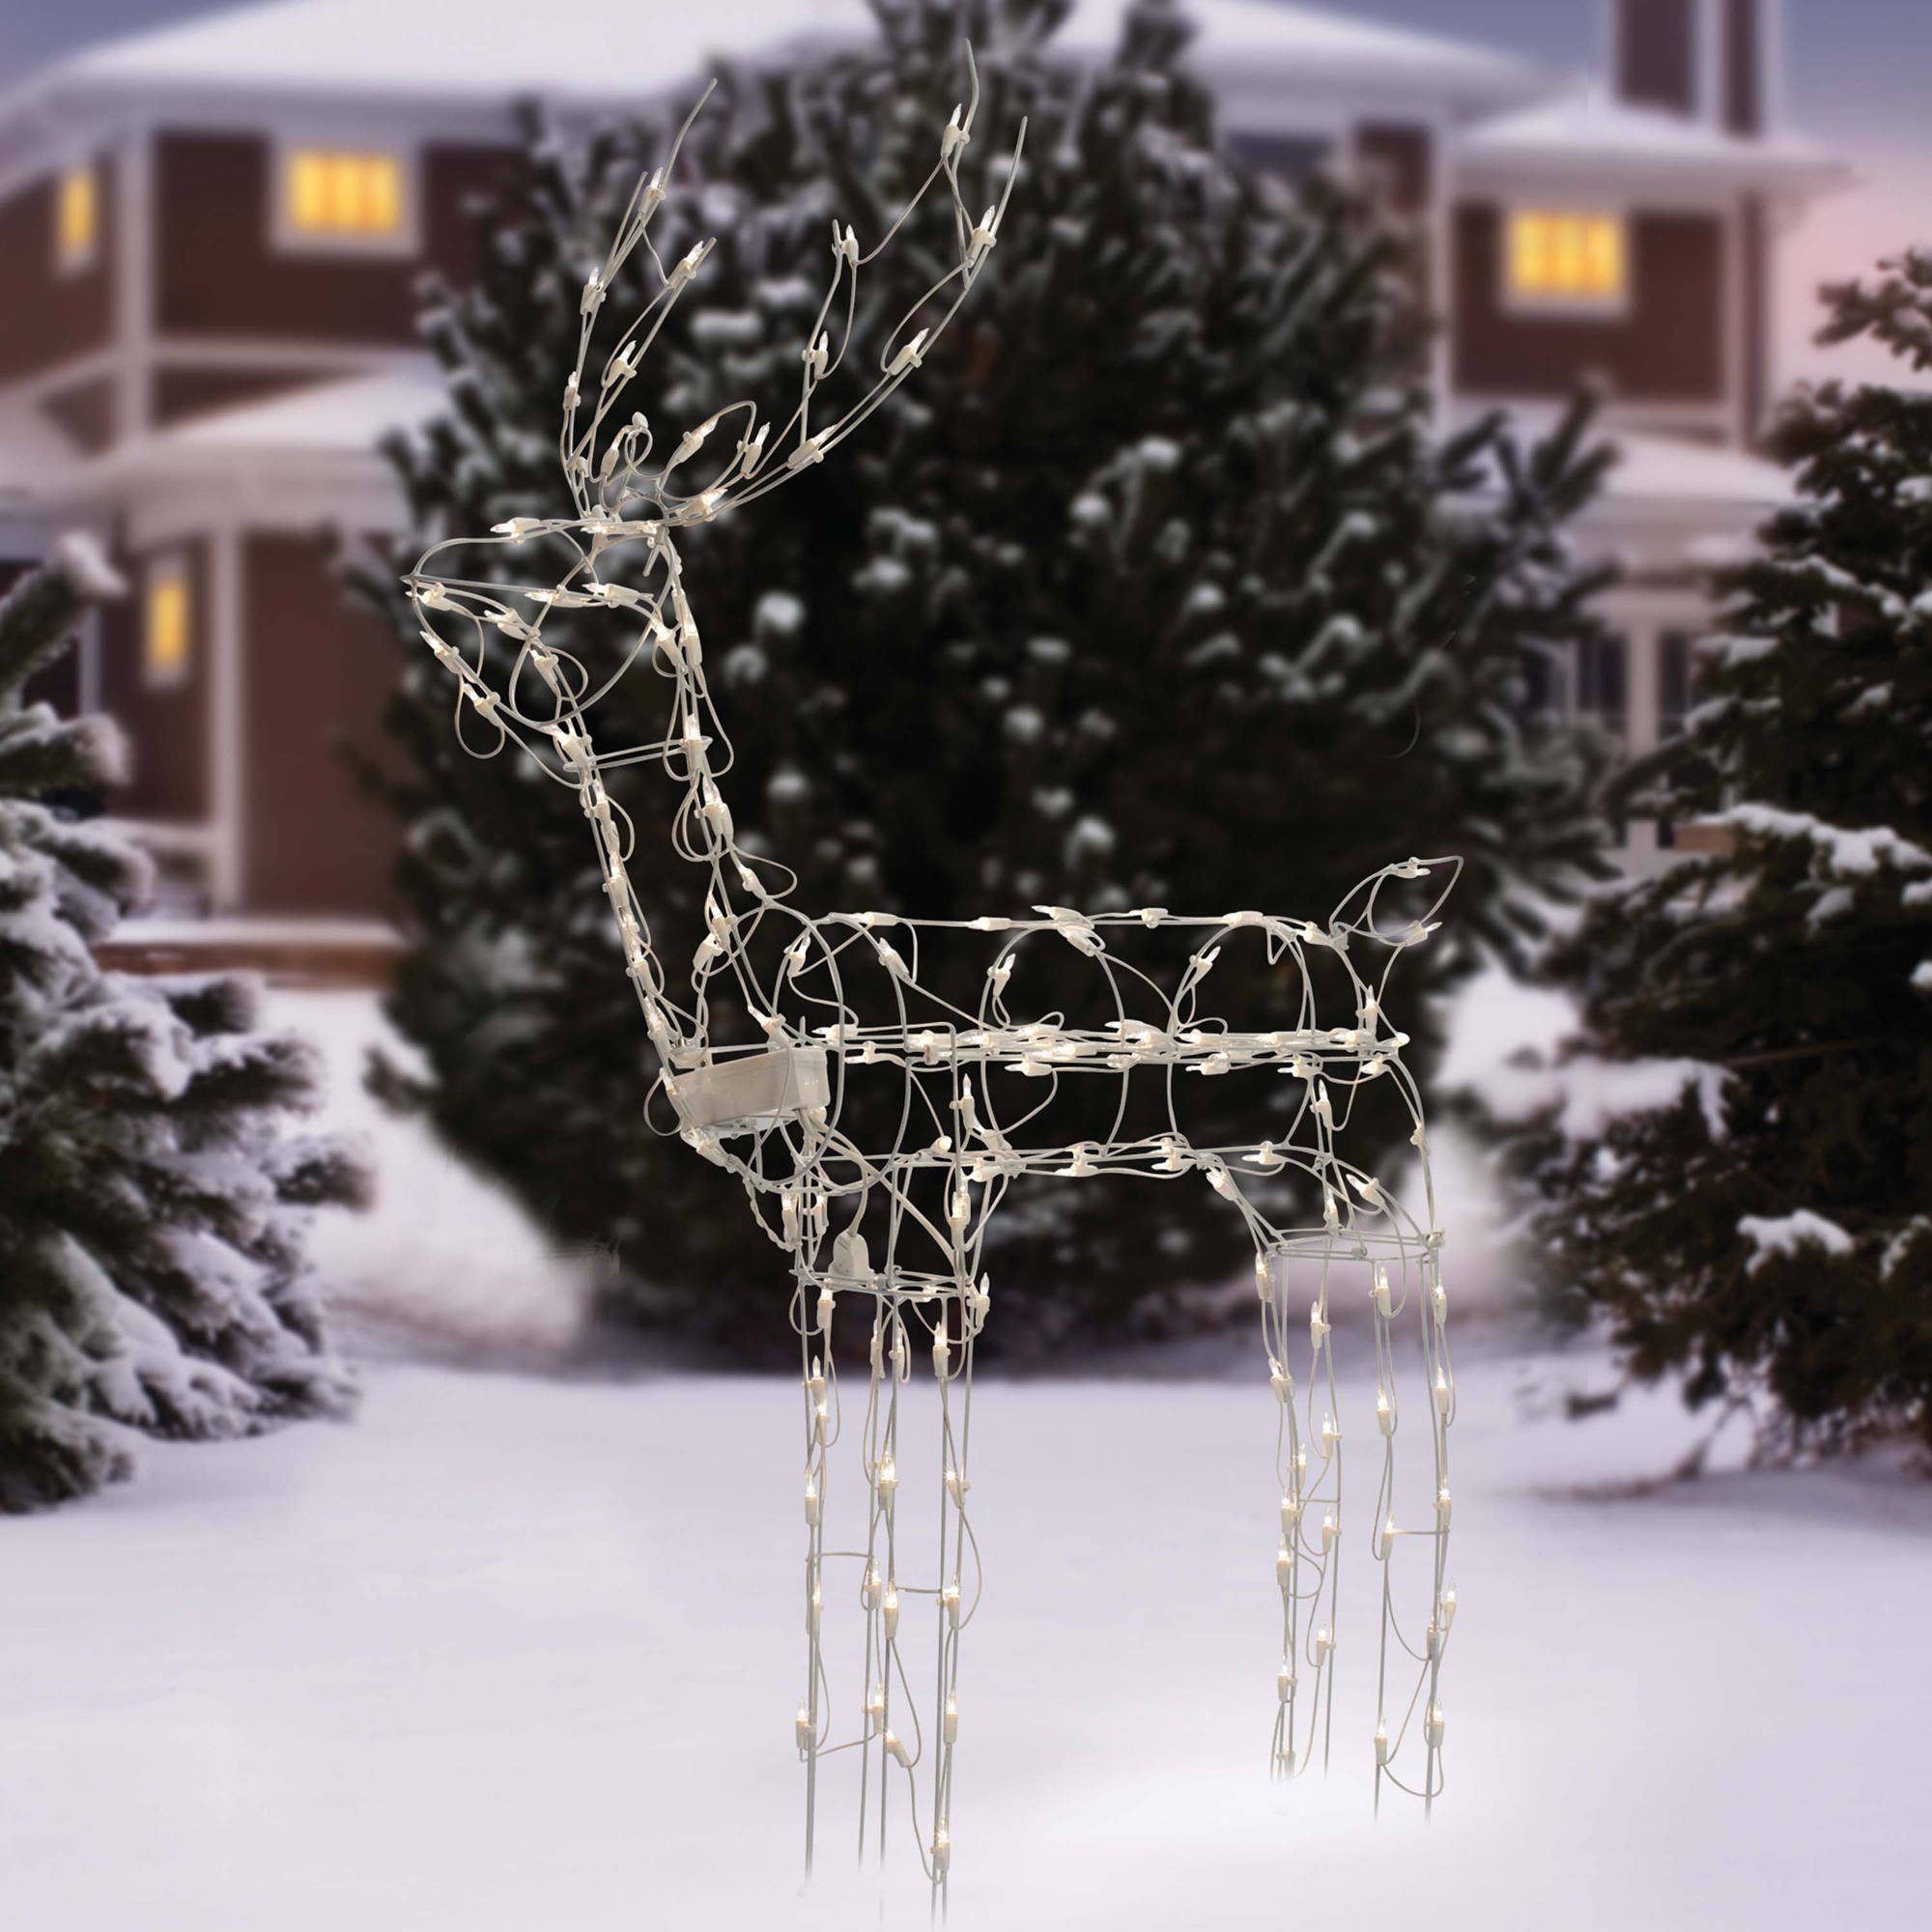 holiday time 48 tall animated standing buck light sculpture christmas decor - Christmas Lights On Sale Walmart